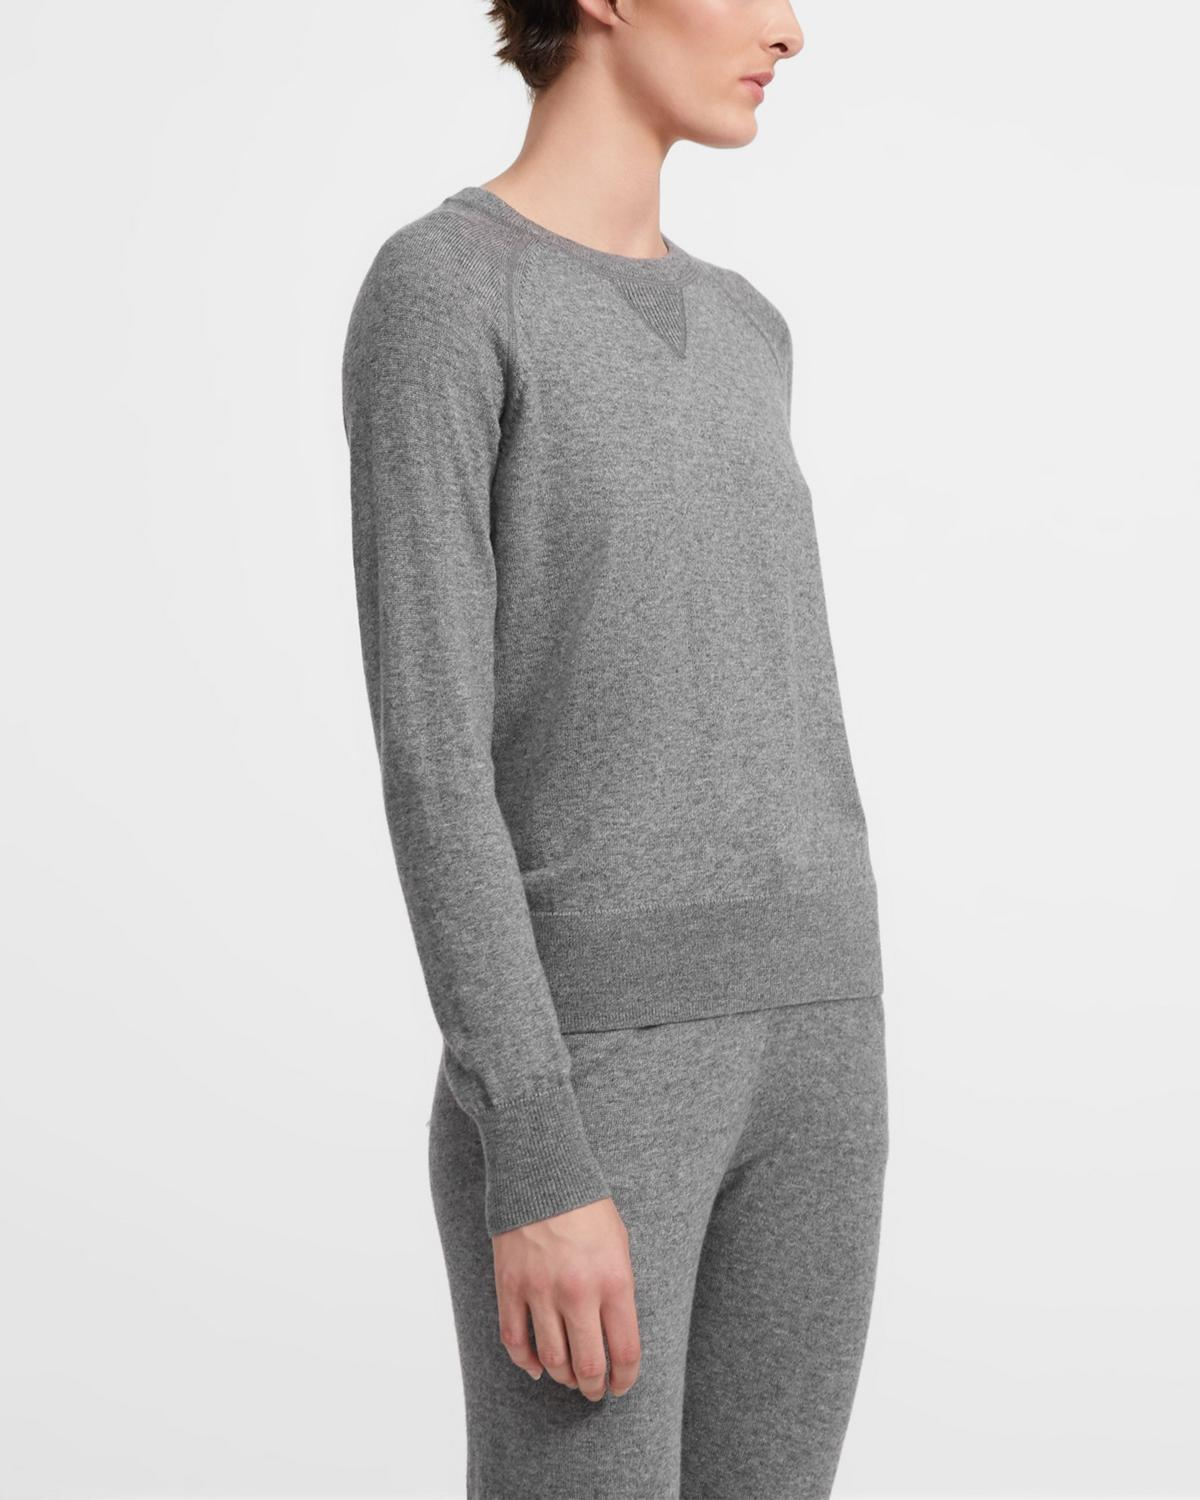 Merino Wool Jersey Easy Crewneck Sweater 0 - click to view larger image